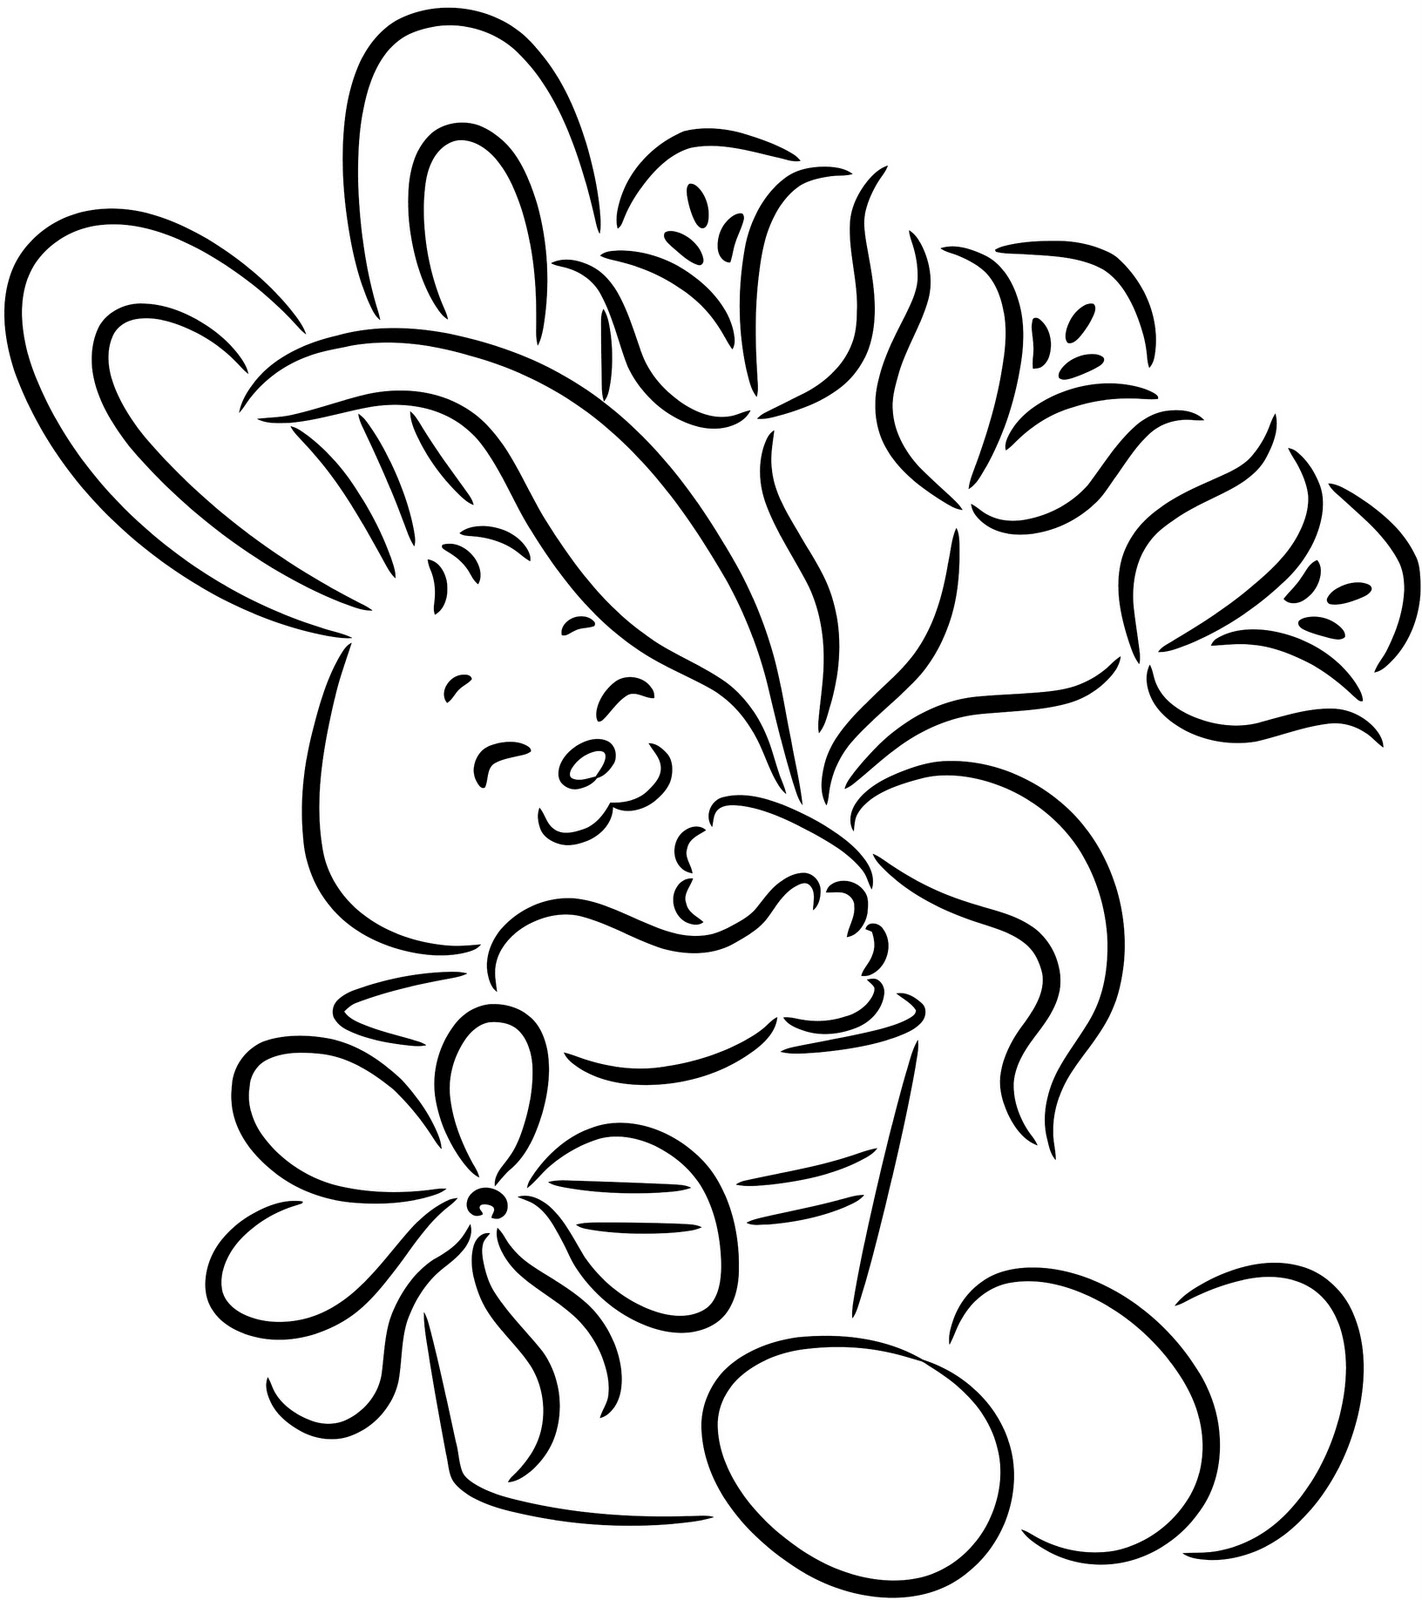 1422x1600 Drawn Bunnying Page Pencil And In Coloring Pages Easter Bunny